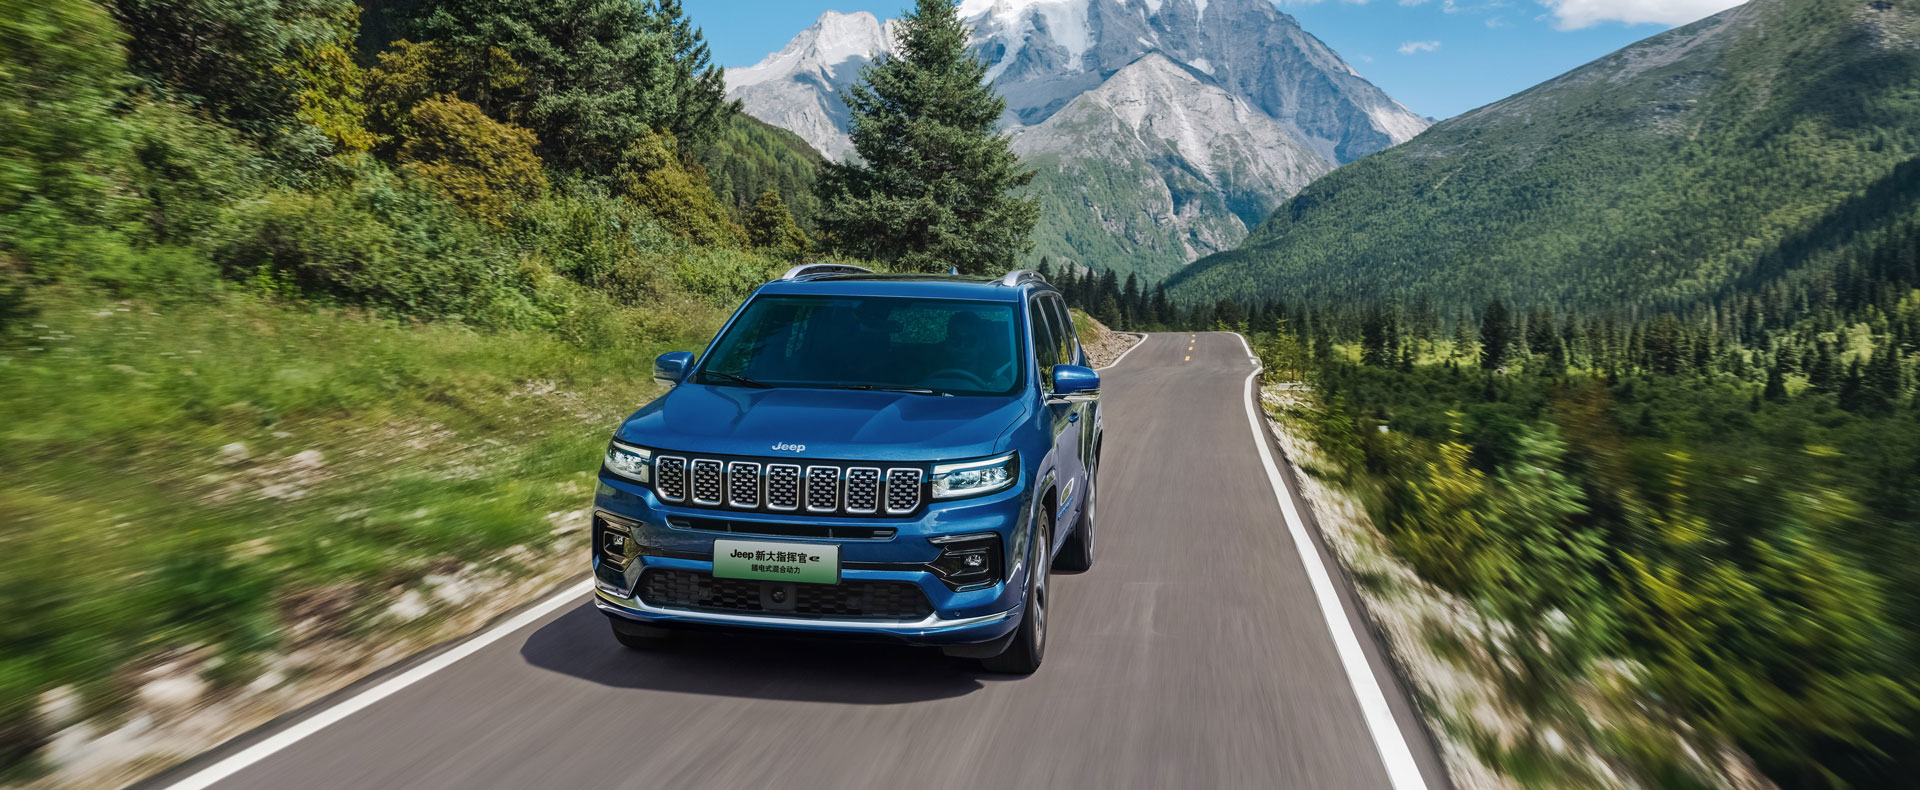 https://www.jeep.com.cn/commander/phev/img/skv2.jpg